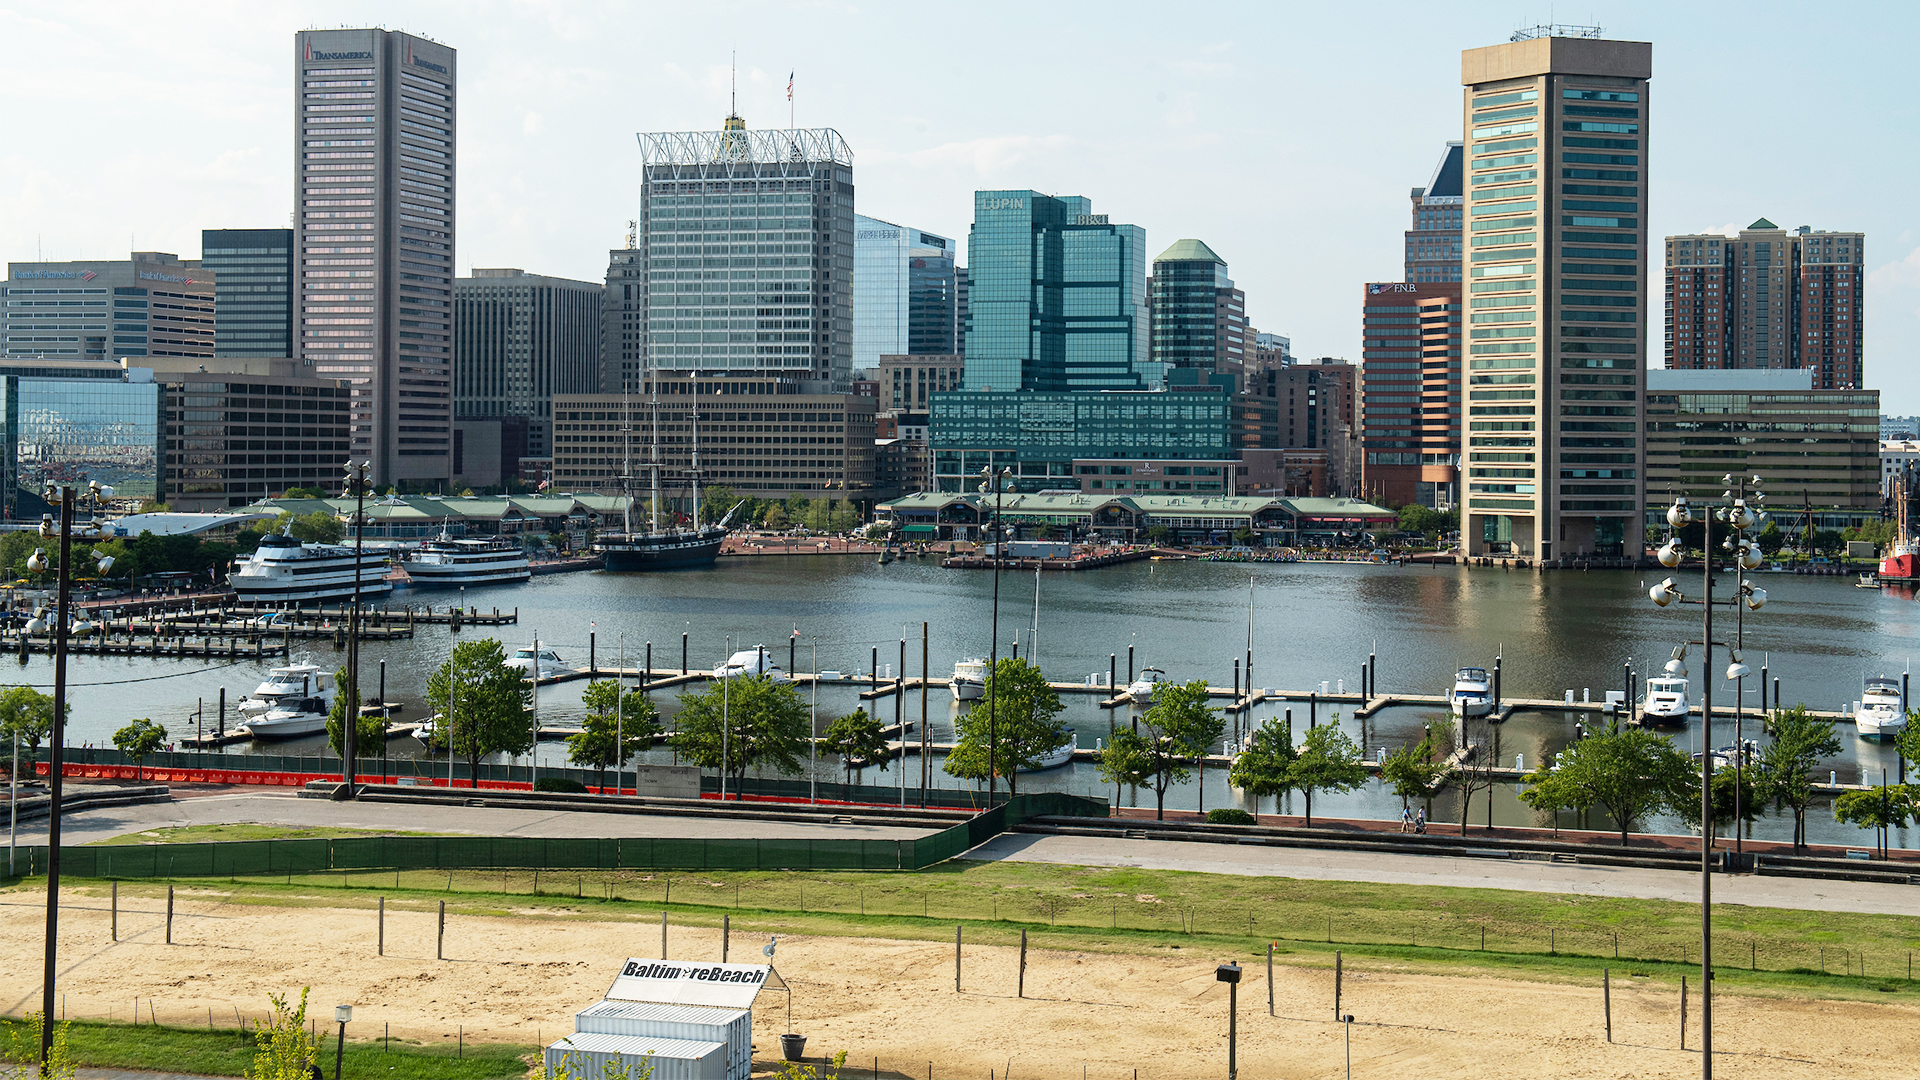 Tall buildings in downtown Baltimore are shown behind the inner harbor.